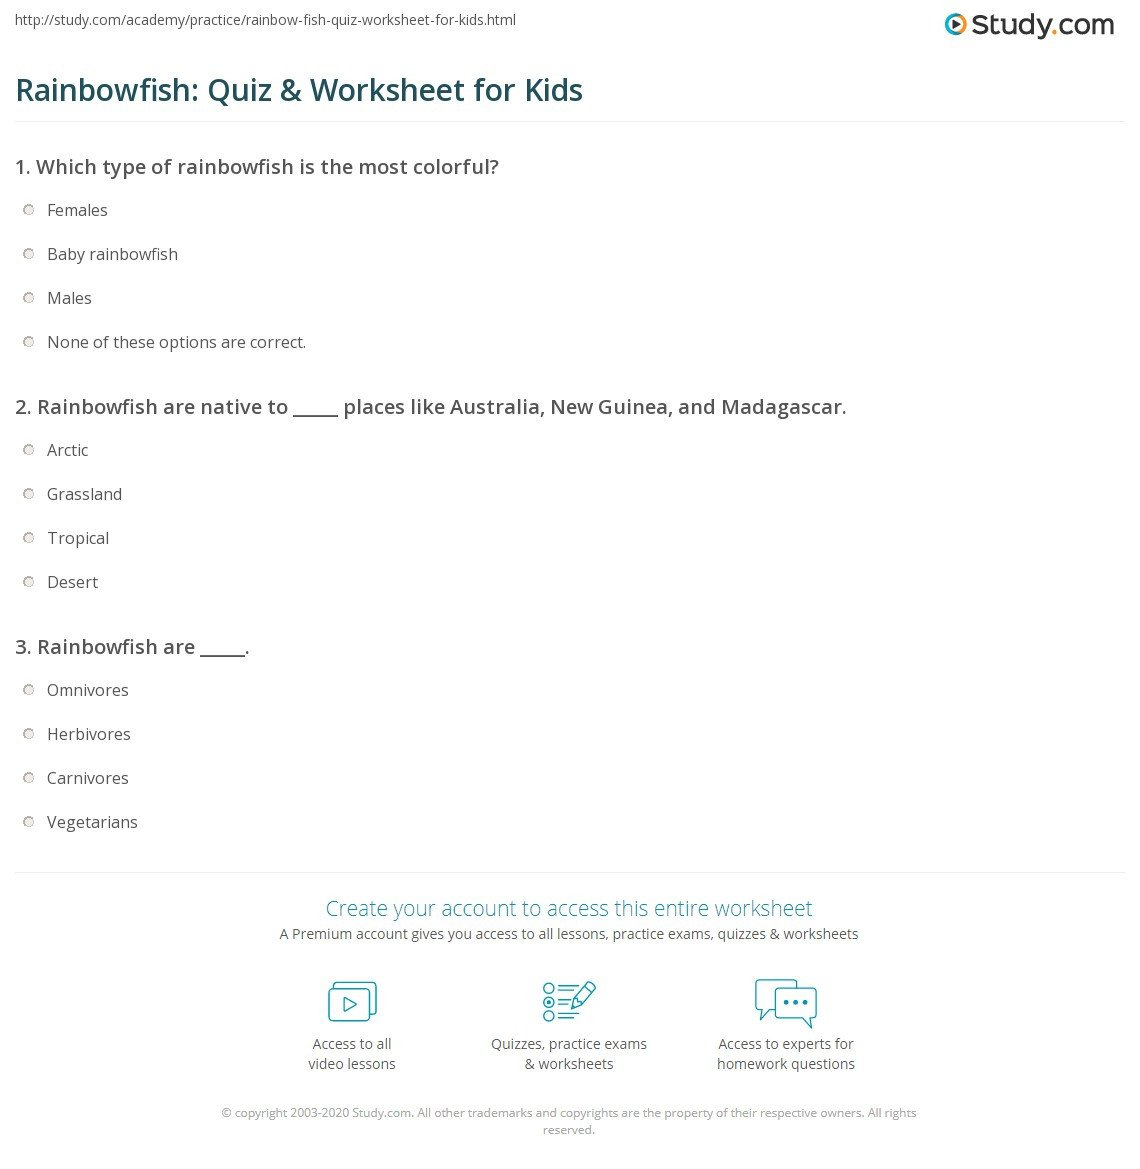 Rainbow Fish Worksheets Rainbowfish Quiz & Worksheet for Kids